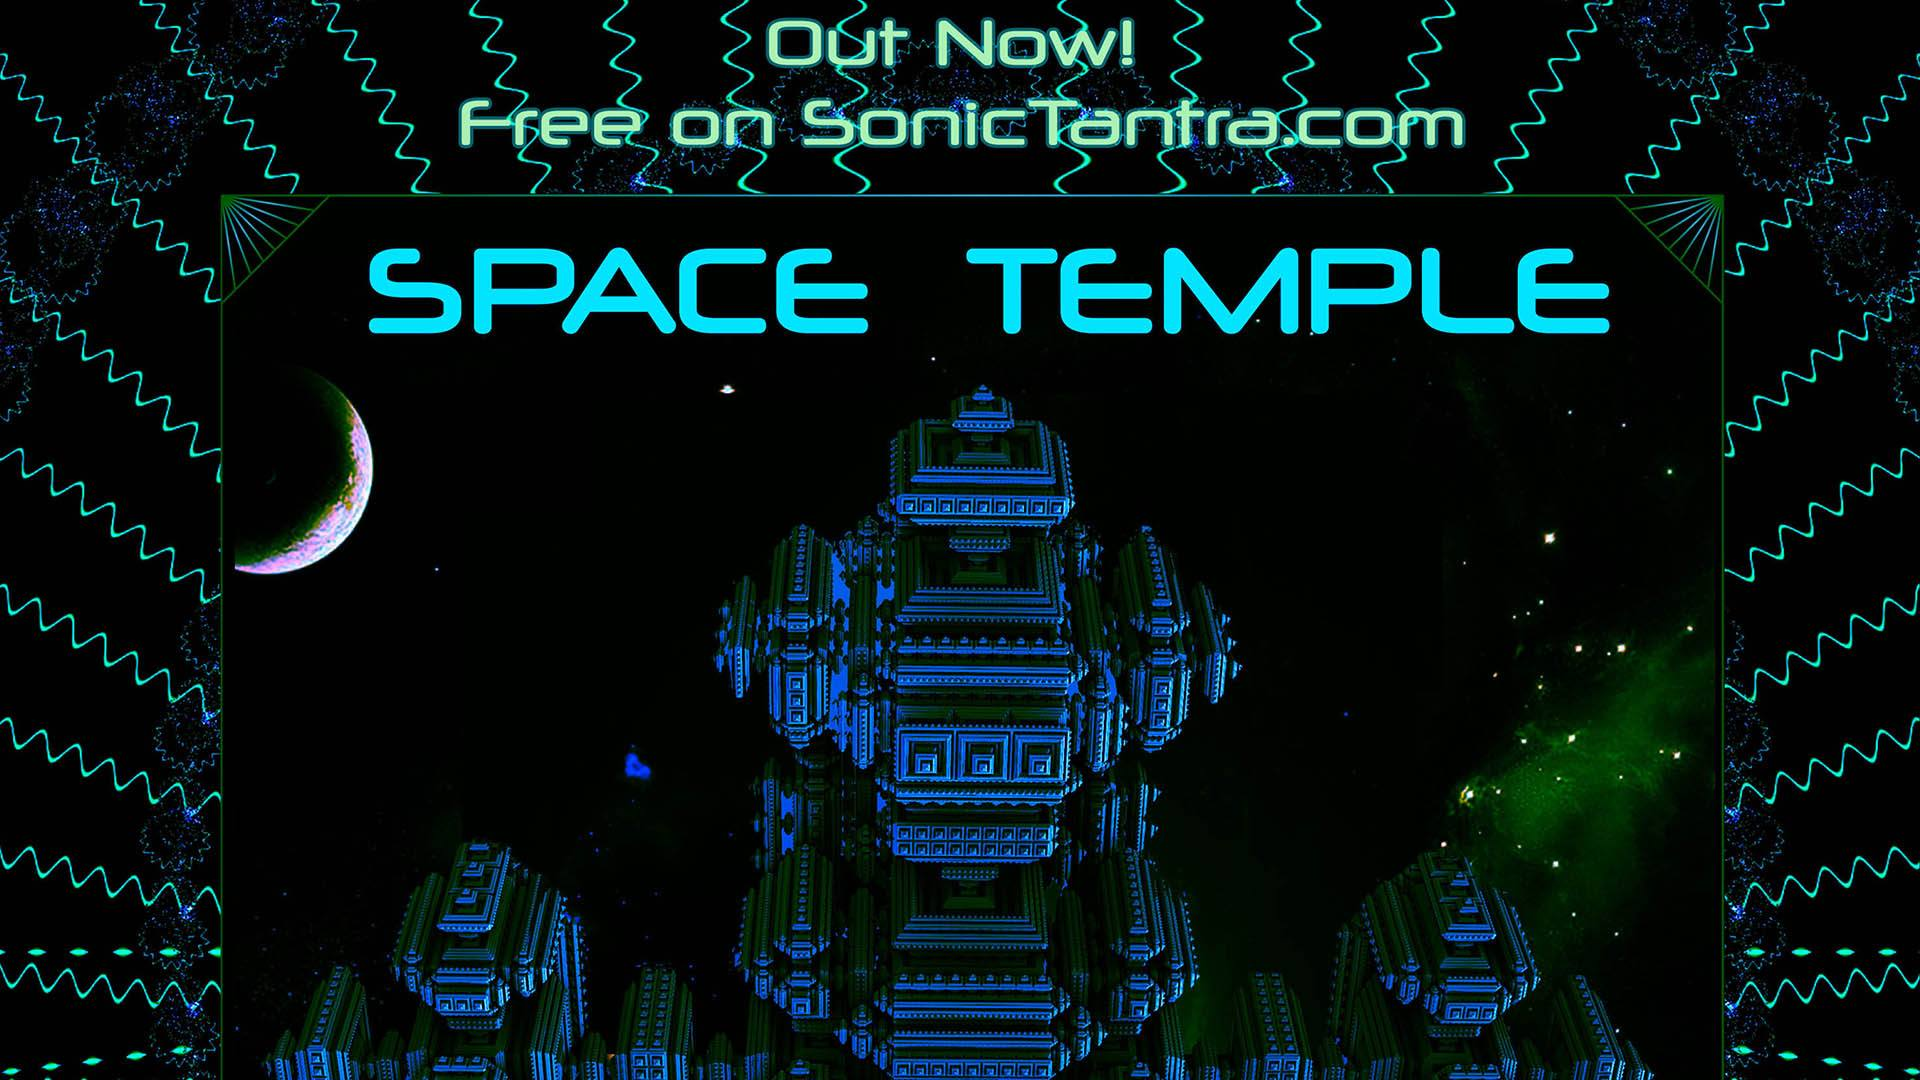 Space Temple out now! 15 of the best hitech psytrance artists from around the world!